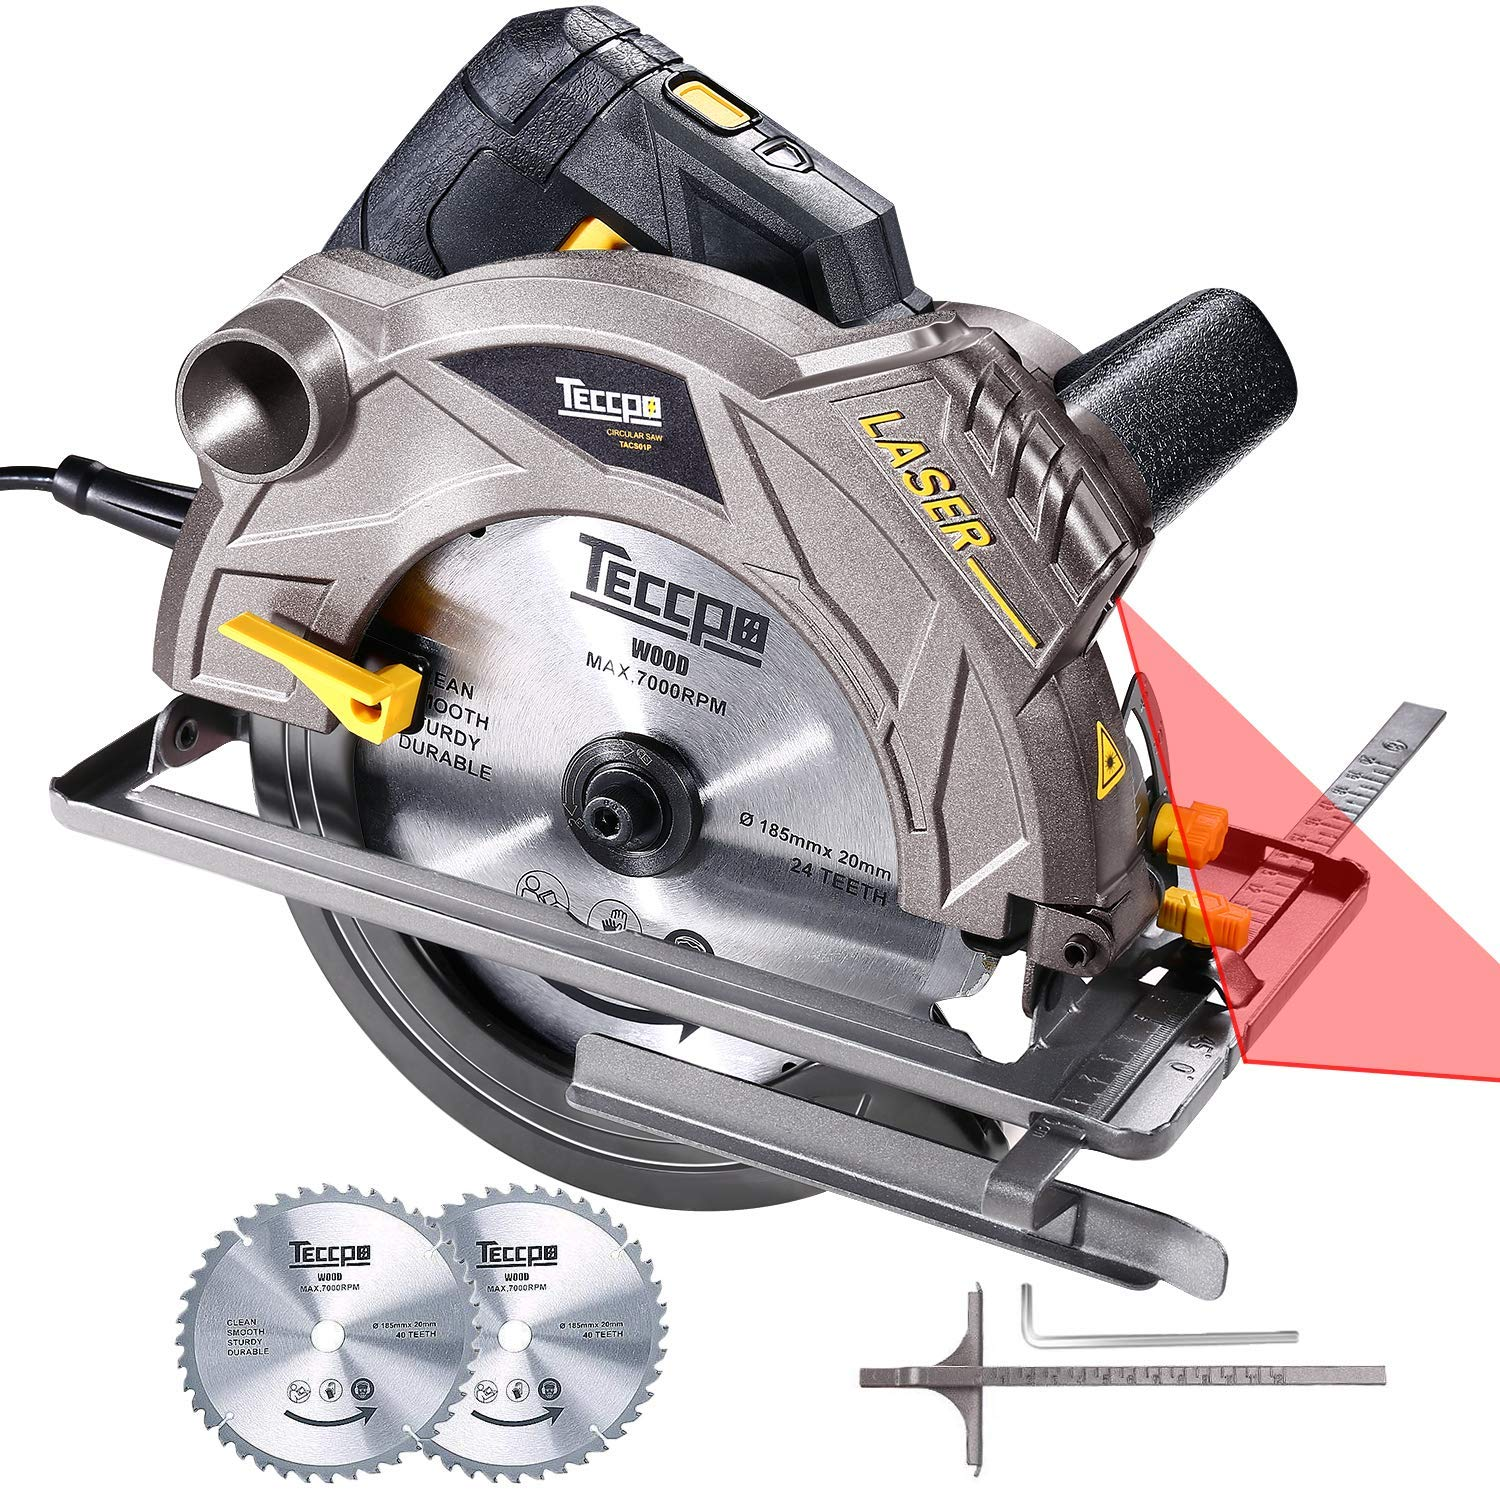 Circular Saw, TECCPO 1500W 5800 RPM Electric Circular Saw with 2 Ø185mm Blades and Laser Guide, Adjustable Cutting Depth and Angle (63mm at 90°, 45mm at 45°) - TACS01P